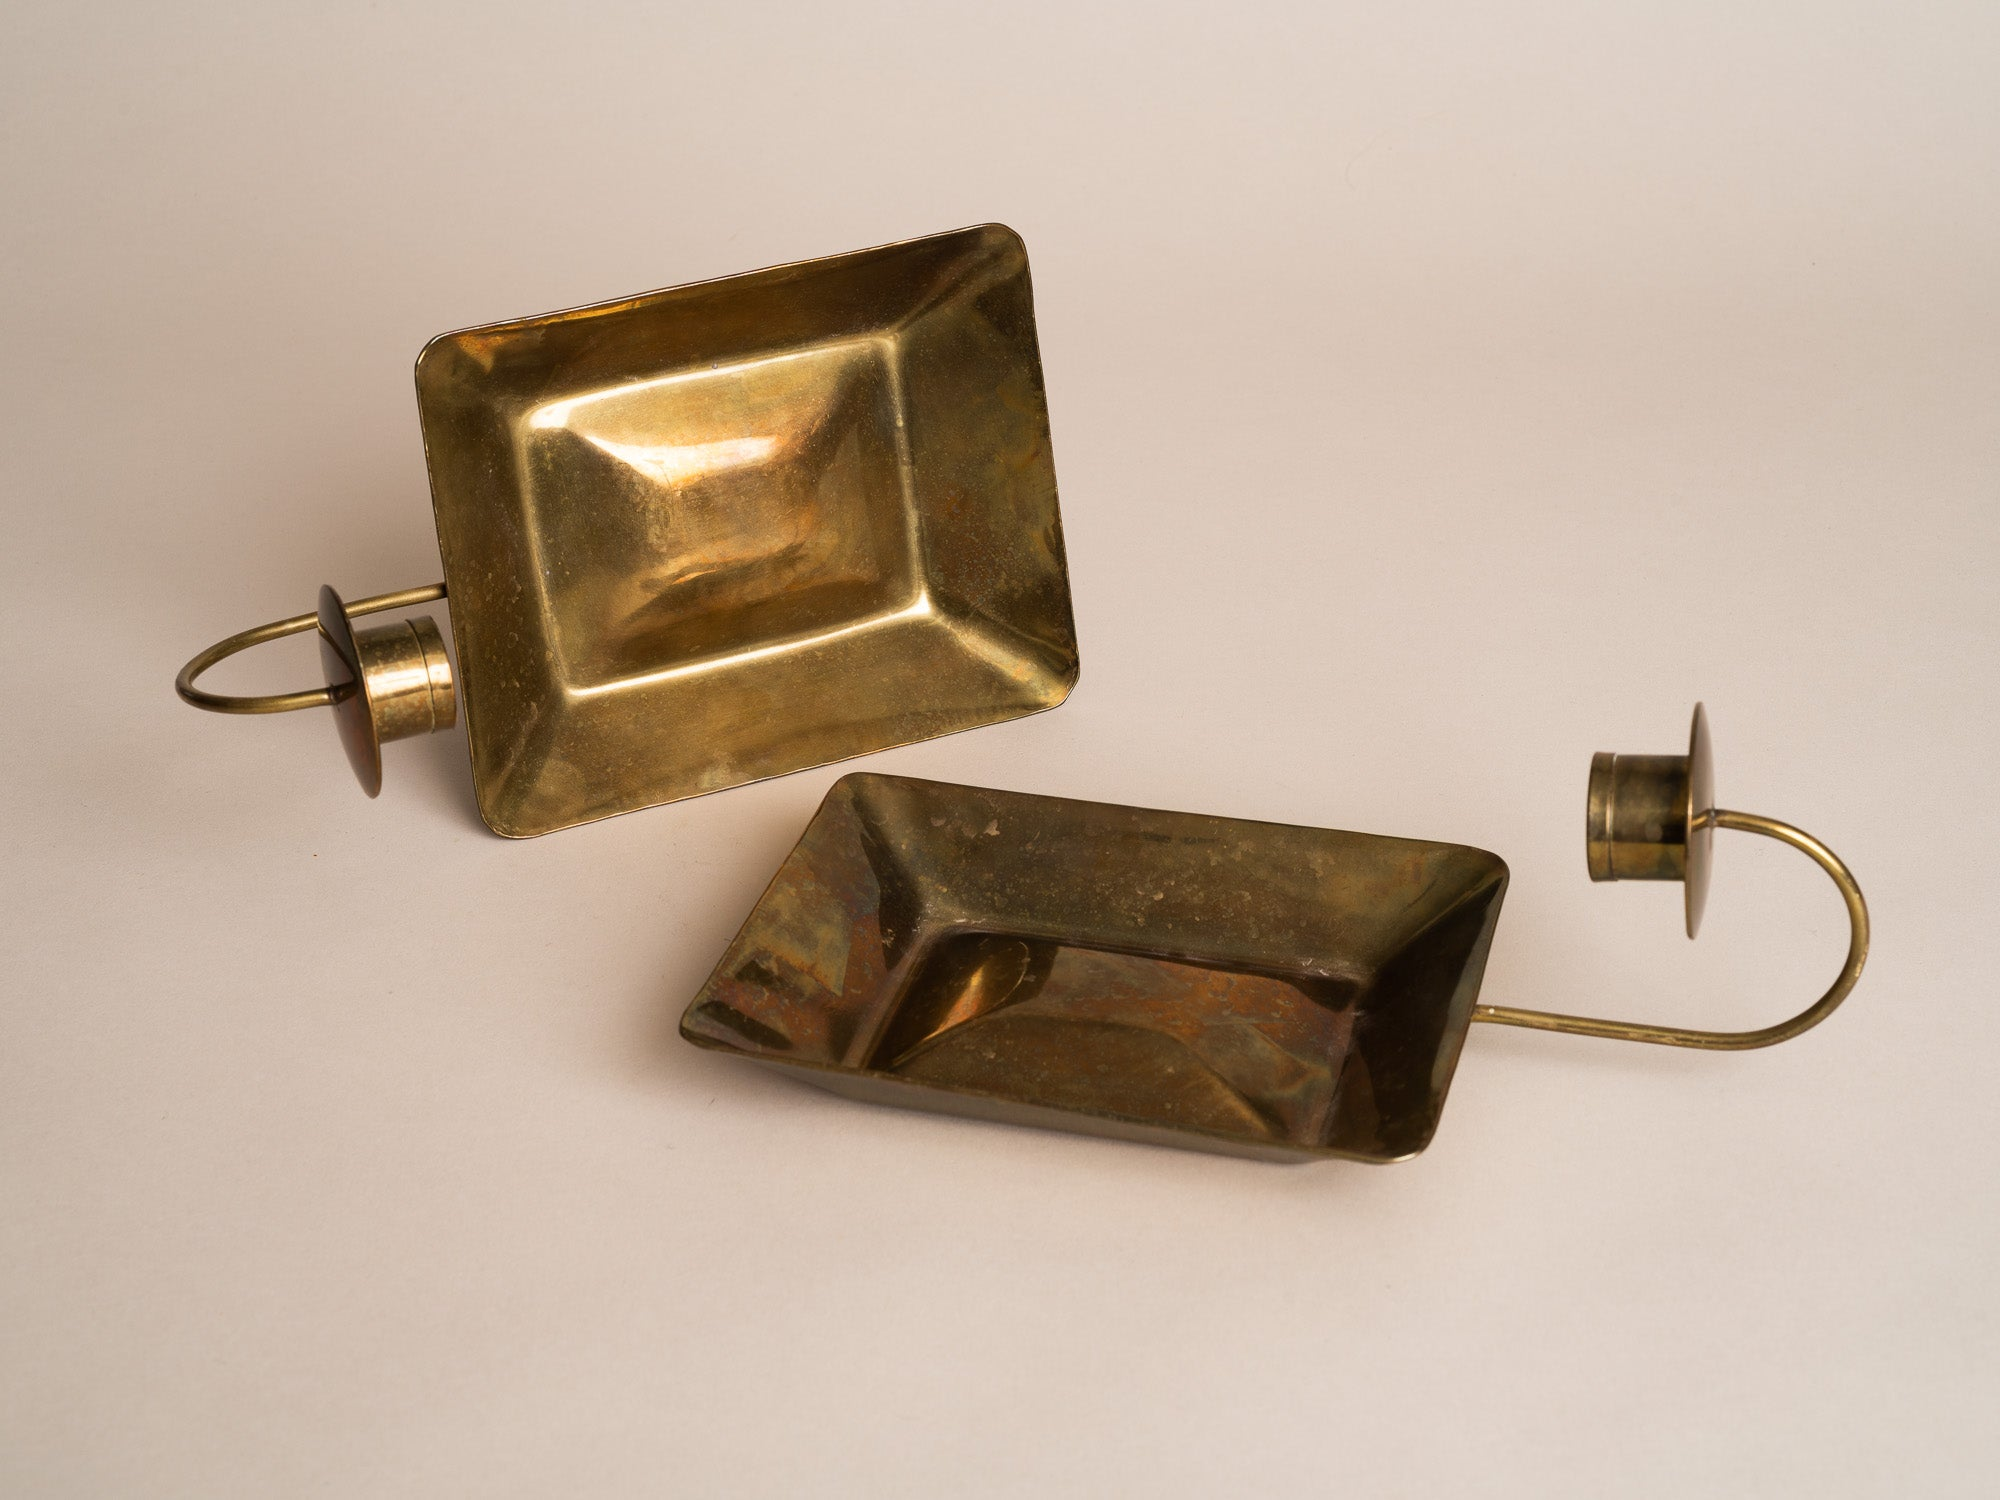 Paire de miroirs d'applique gustaviens en laiton, Suède (vers 1900)..Pair of gustavian folk brass wall hanging candle holders, Sweden (circa 1900)